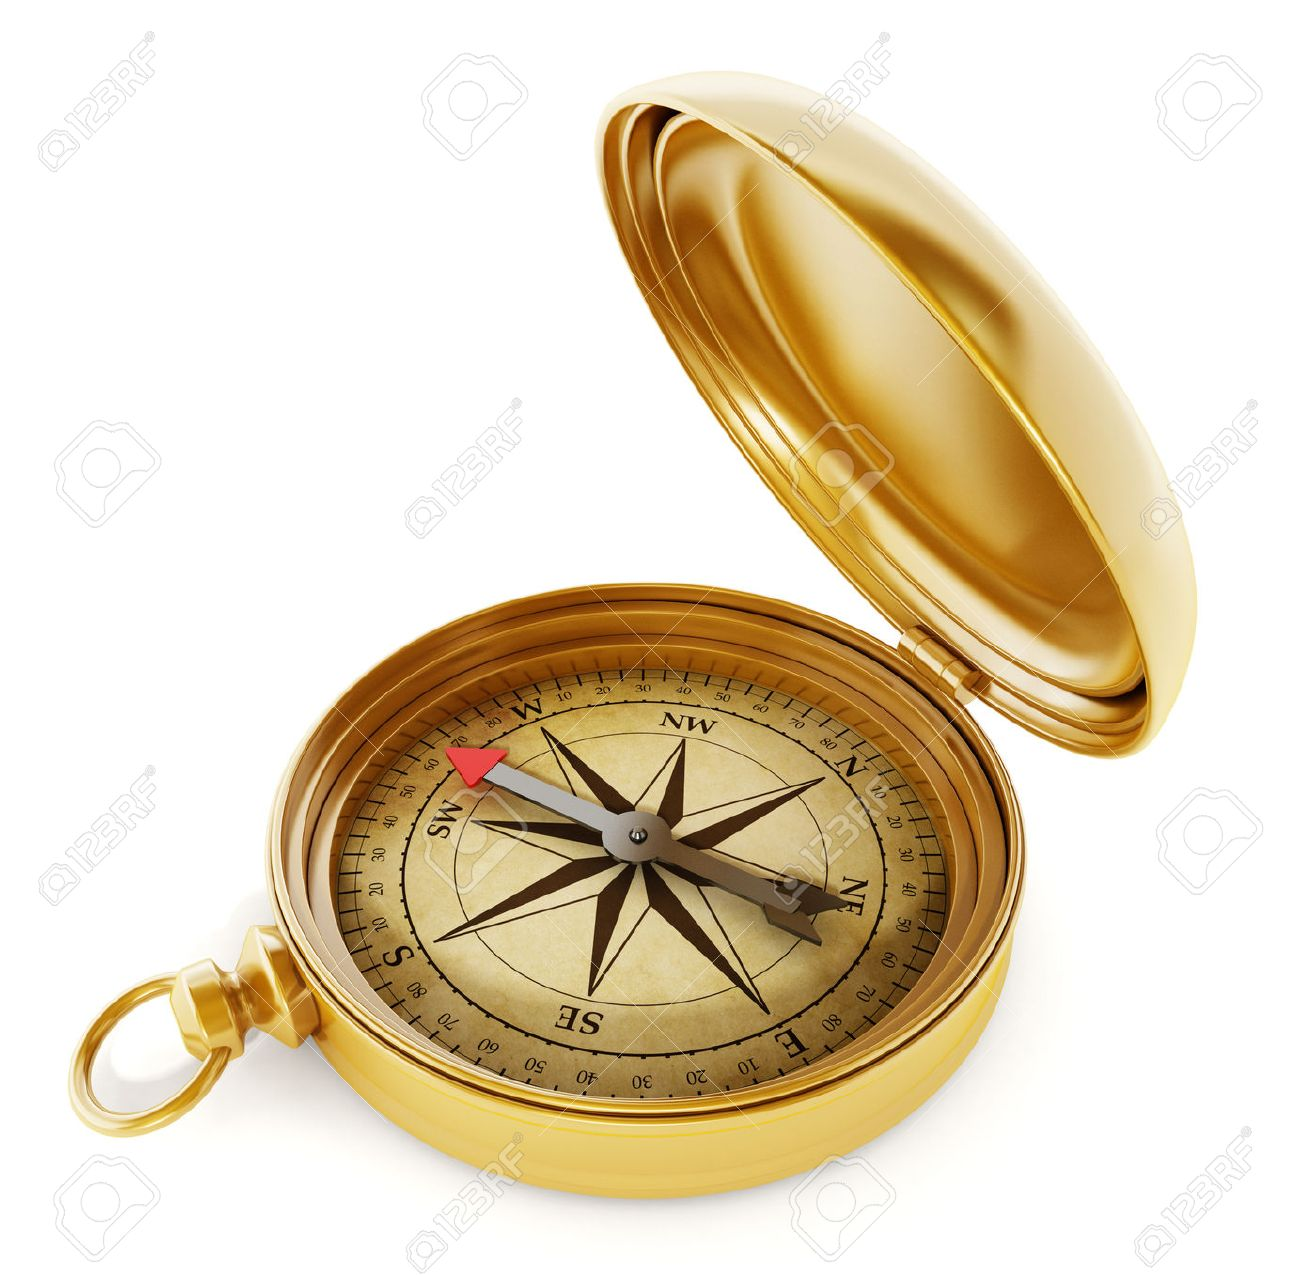 Vintage compass standing on old world map Stock Photo - 55634343